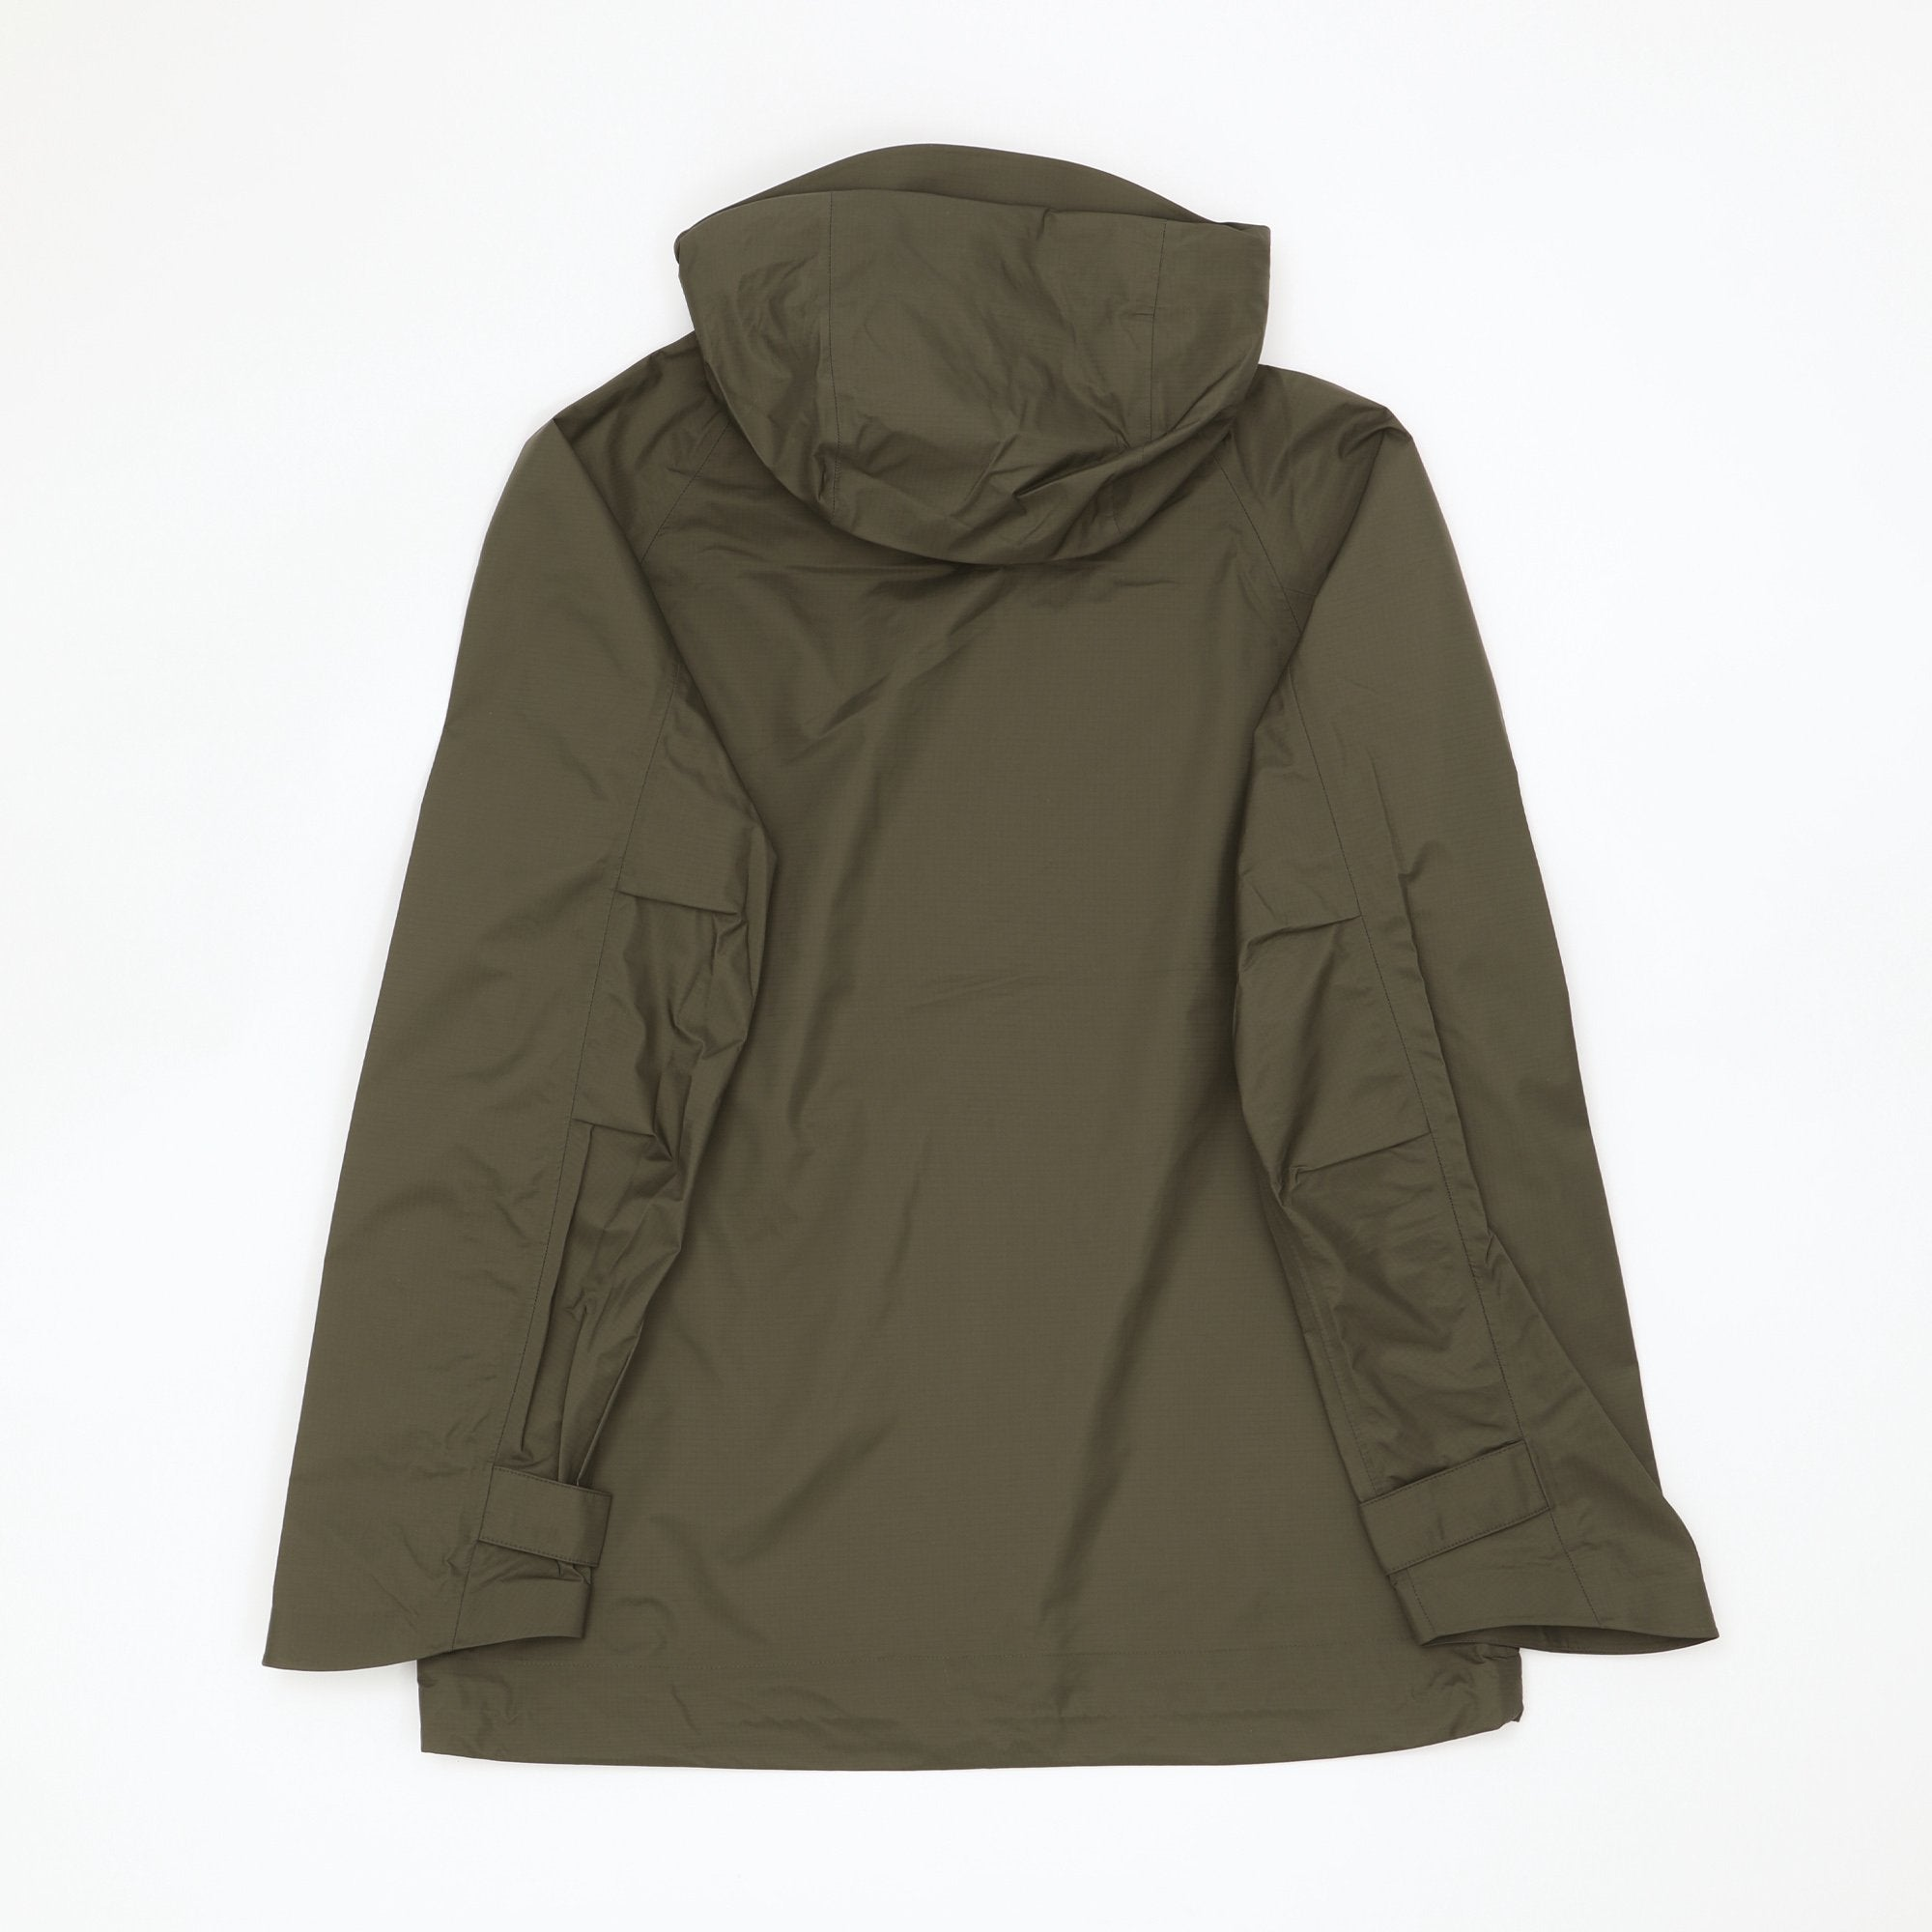 nanga-aurora-light-3layer-shell-parka-khaki-202-sunnysiders-1.jpg